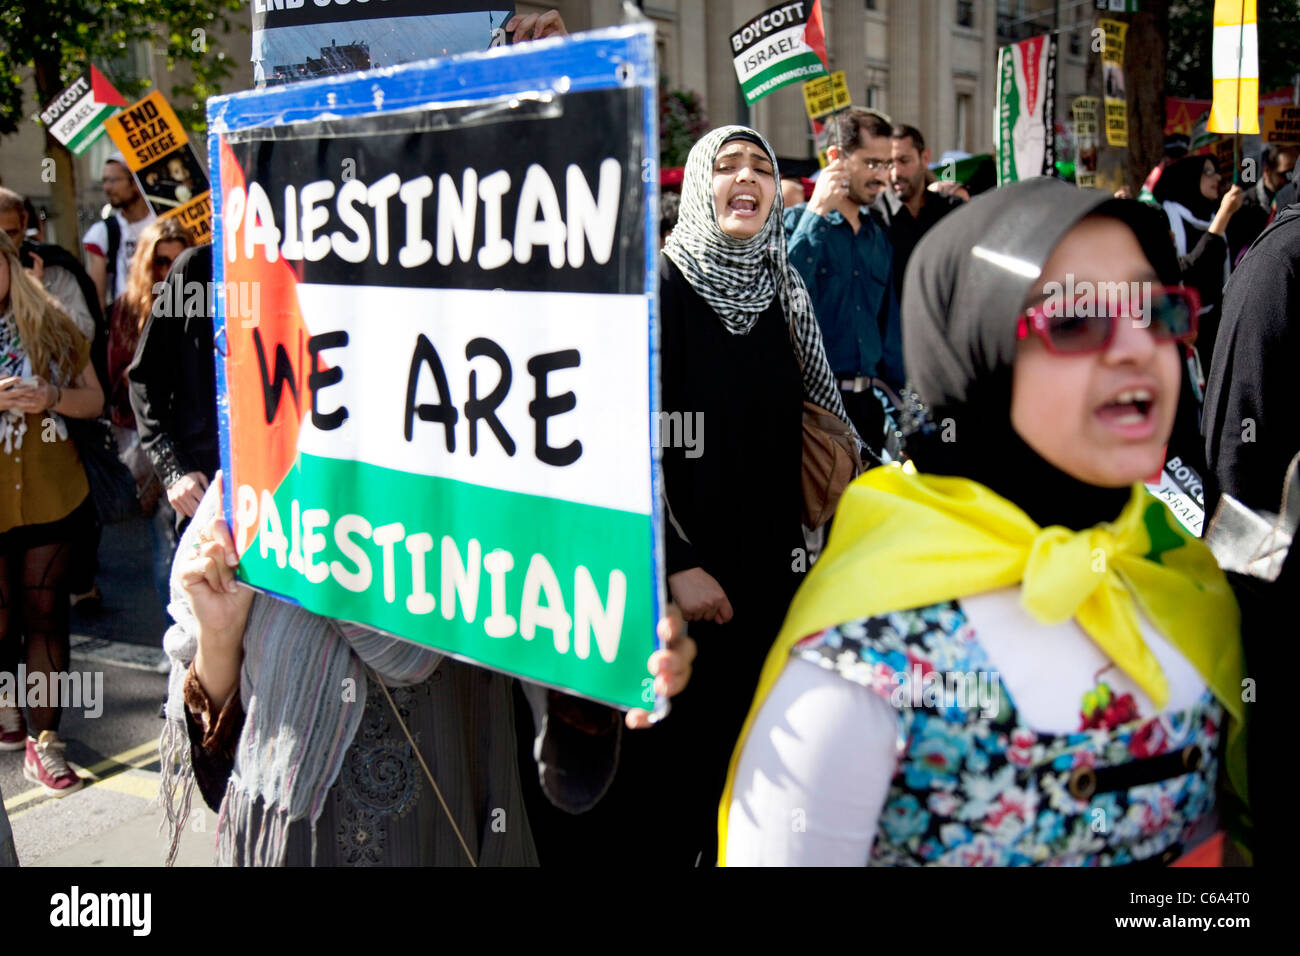 Palestinian anti Israeli / Zionism demonstration in London. Palestinians protesting against occupation and a closed - Stock Image